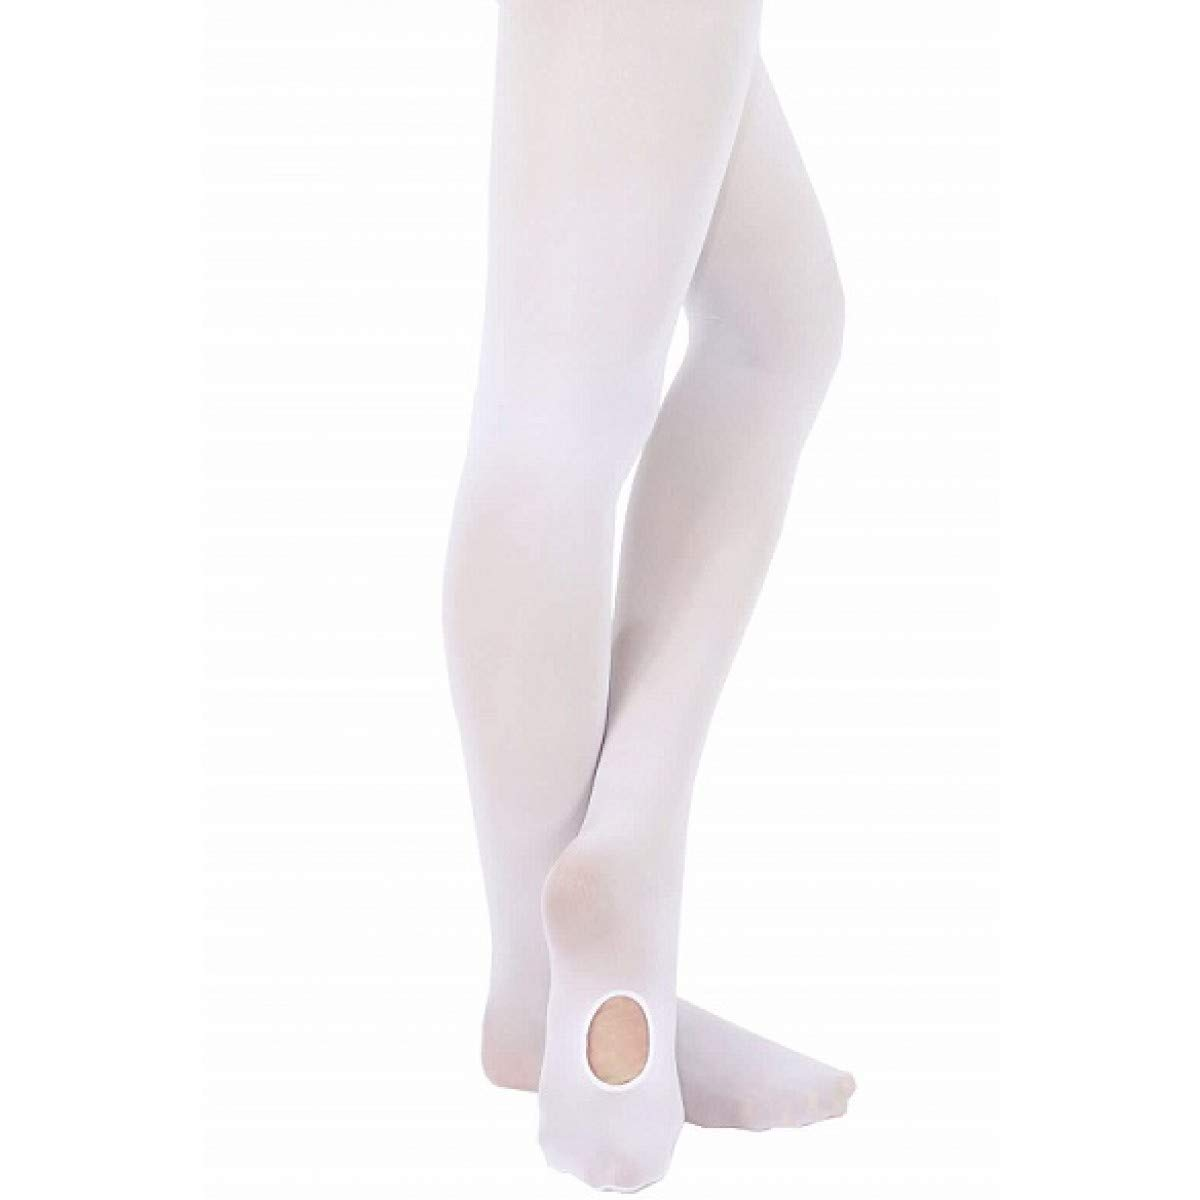 Grace Convertible Dance Tights (Child Large (2 Pack), White) by GDS